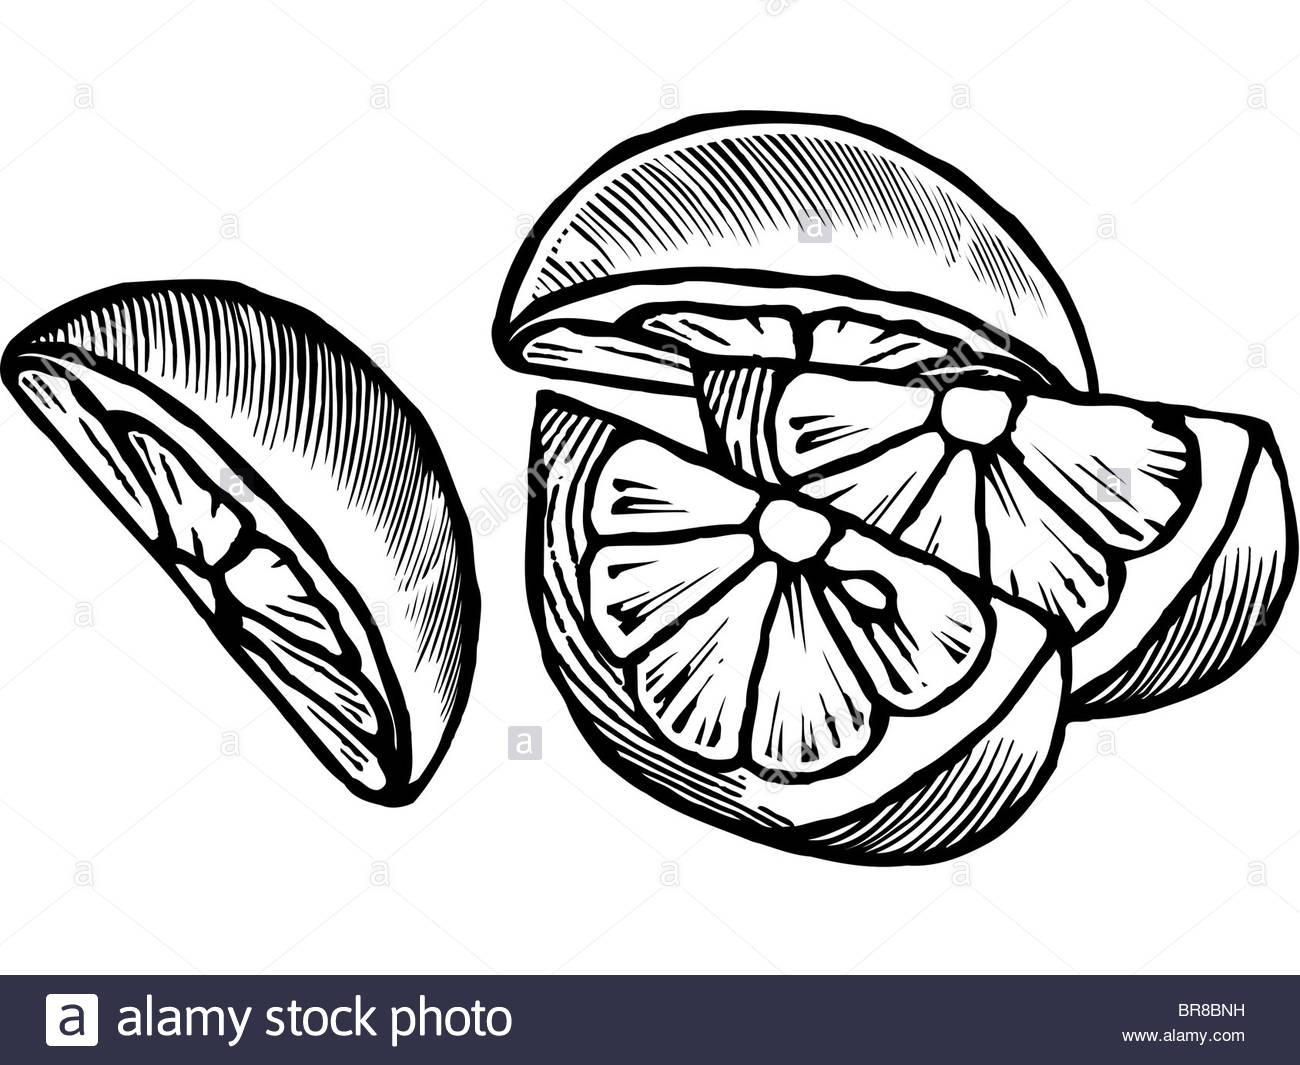 1300x1065 A Black And White Drawing Of Lemon Wedges Stock Photo 31532301